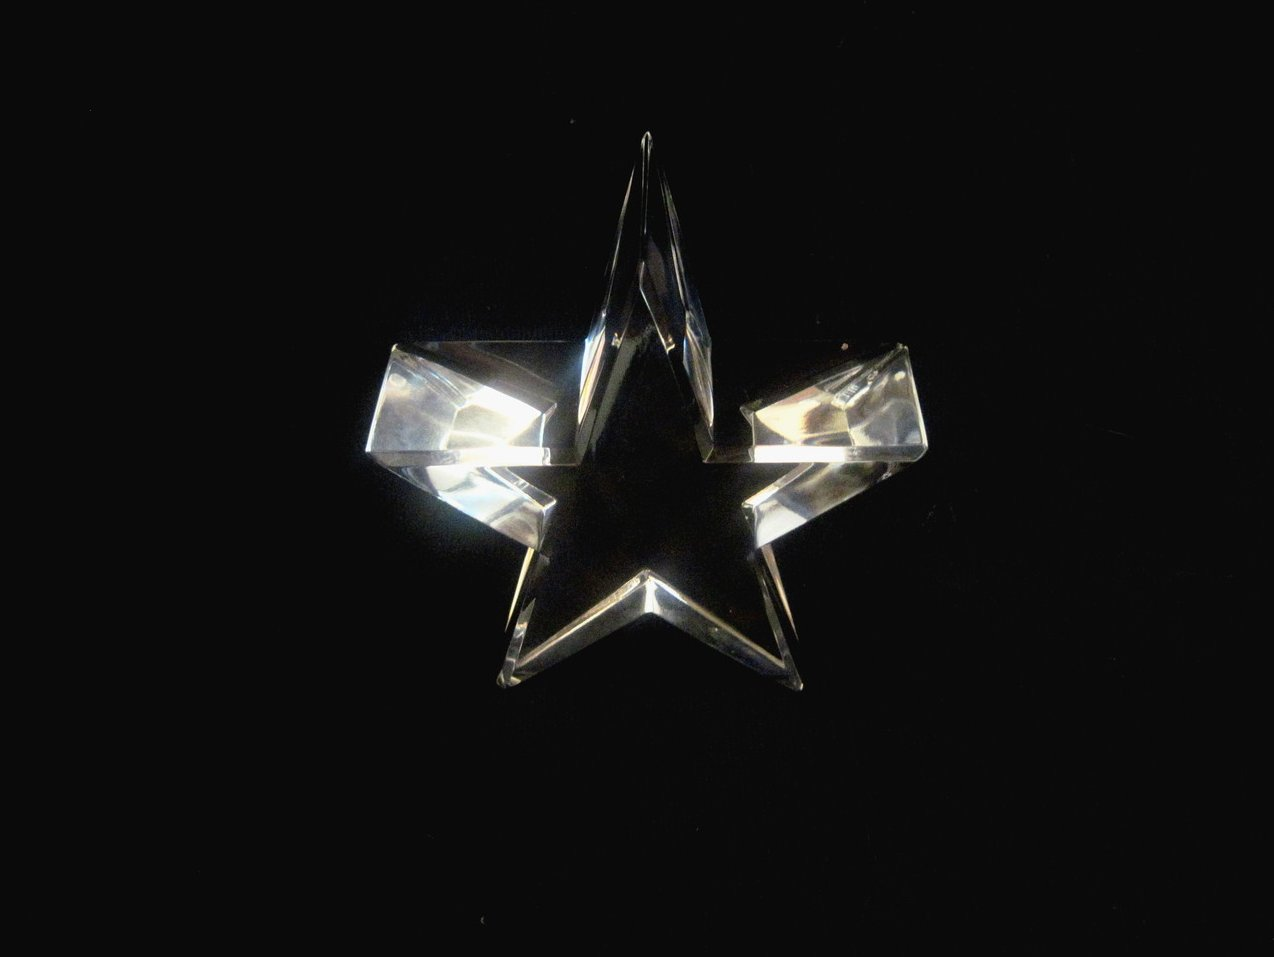 Image 3 of Optical Crystal Star Paperweight Elegant Cut Nordstrom